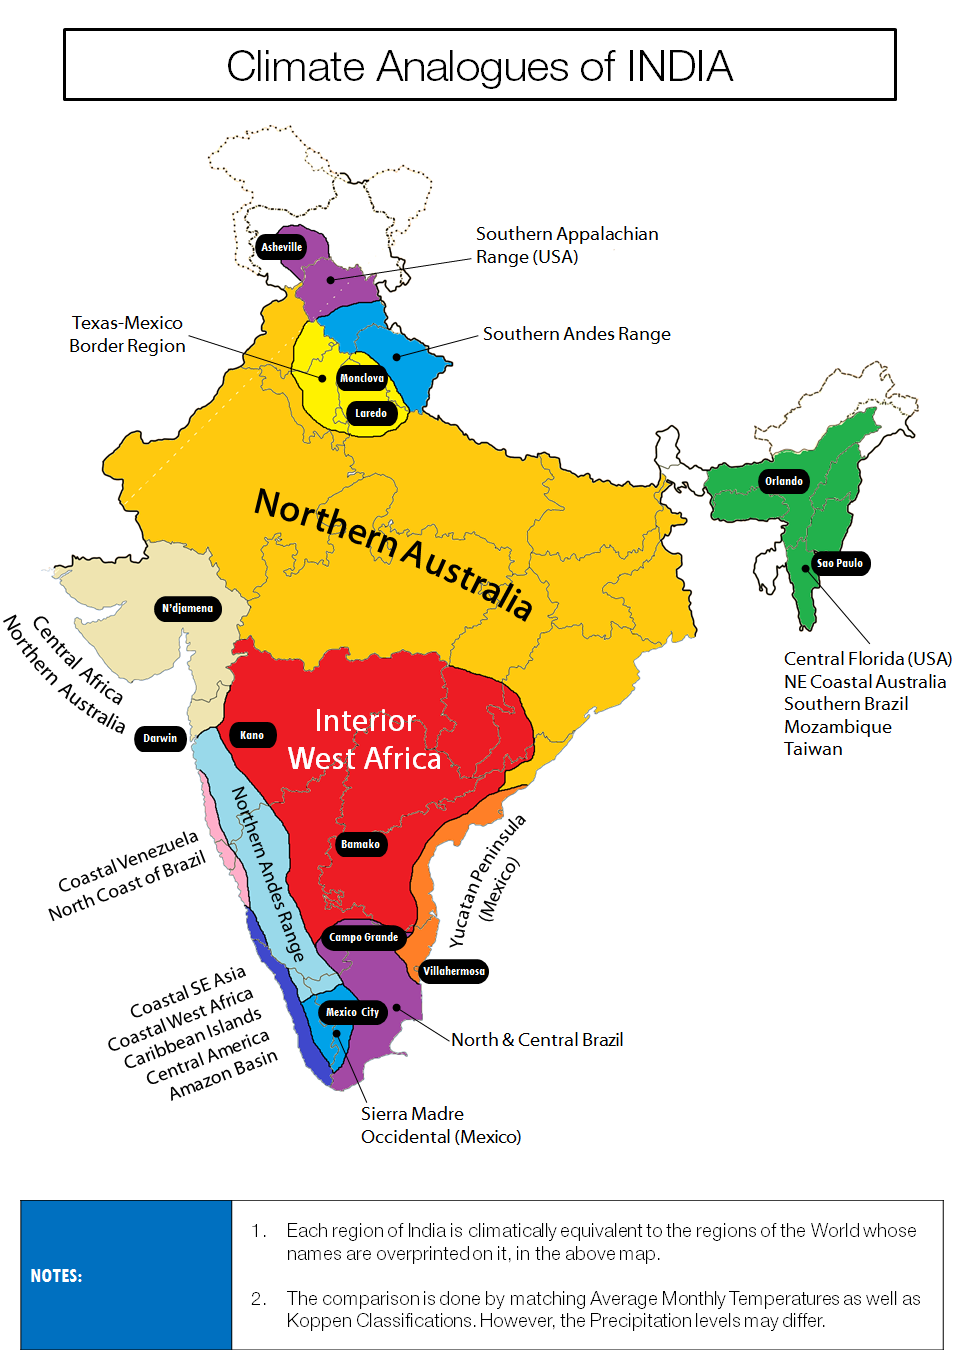 16 Fascinating Maps Thatll Change Your Perception Of India